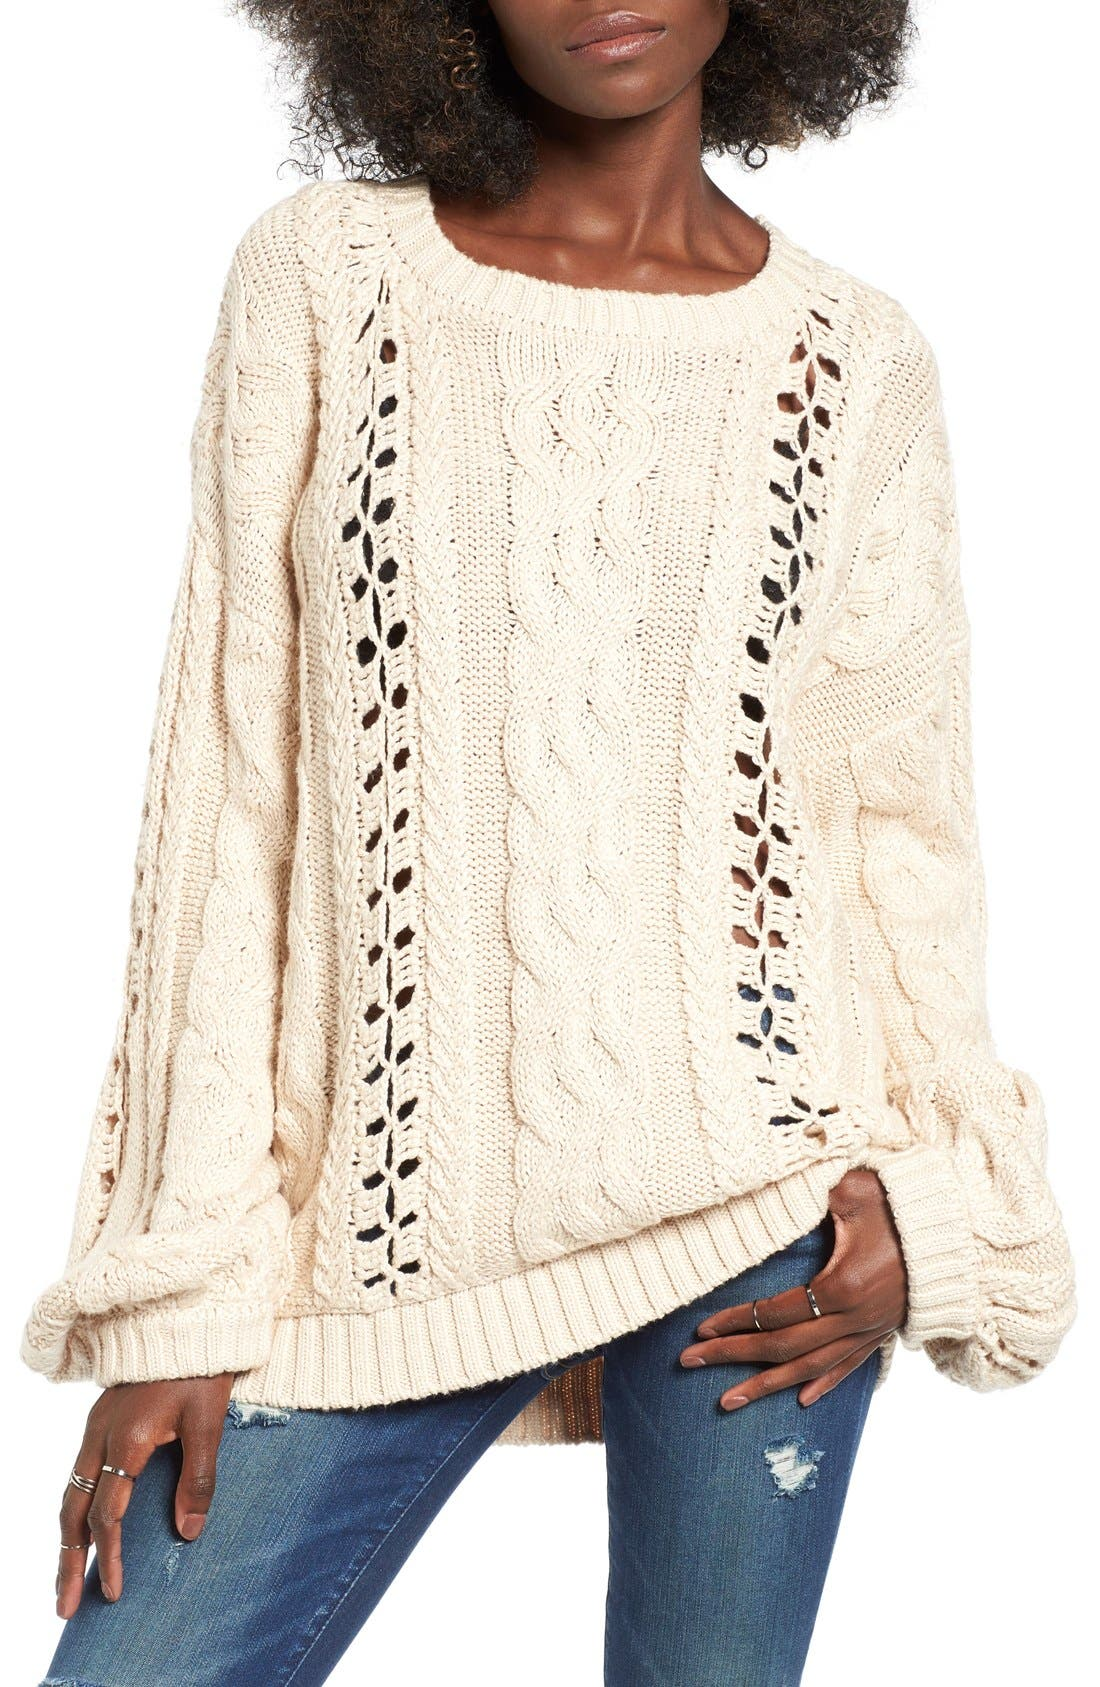 Alternate Image 1 Selected - For Love & Lemons Wythe Cable Knit Sweater